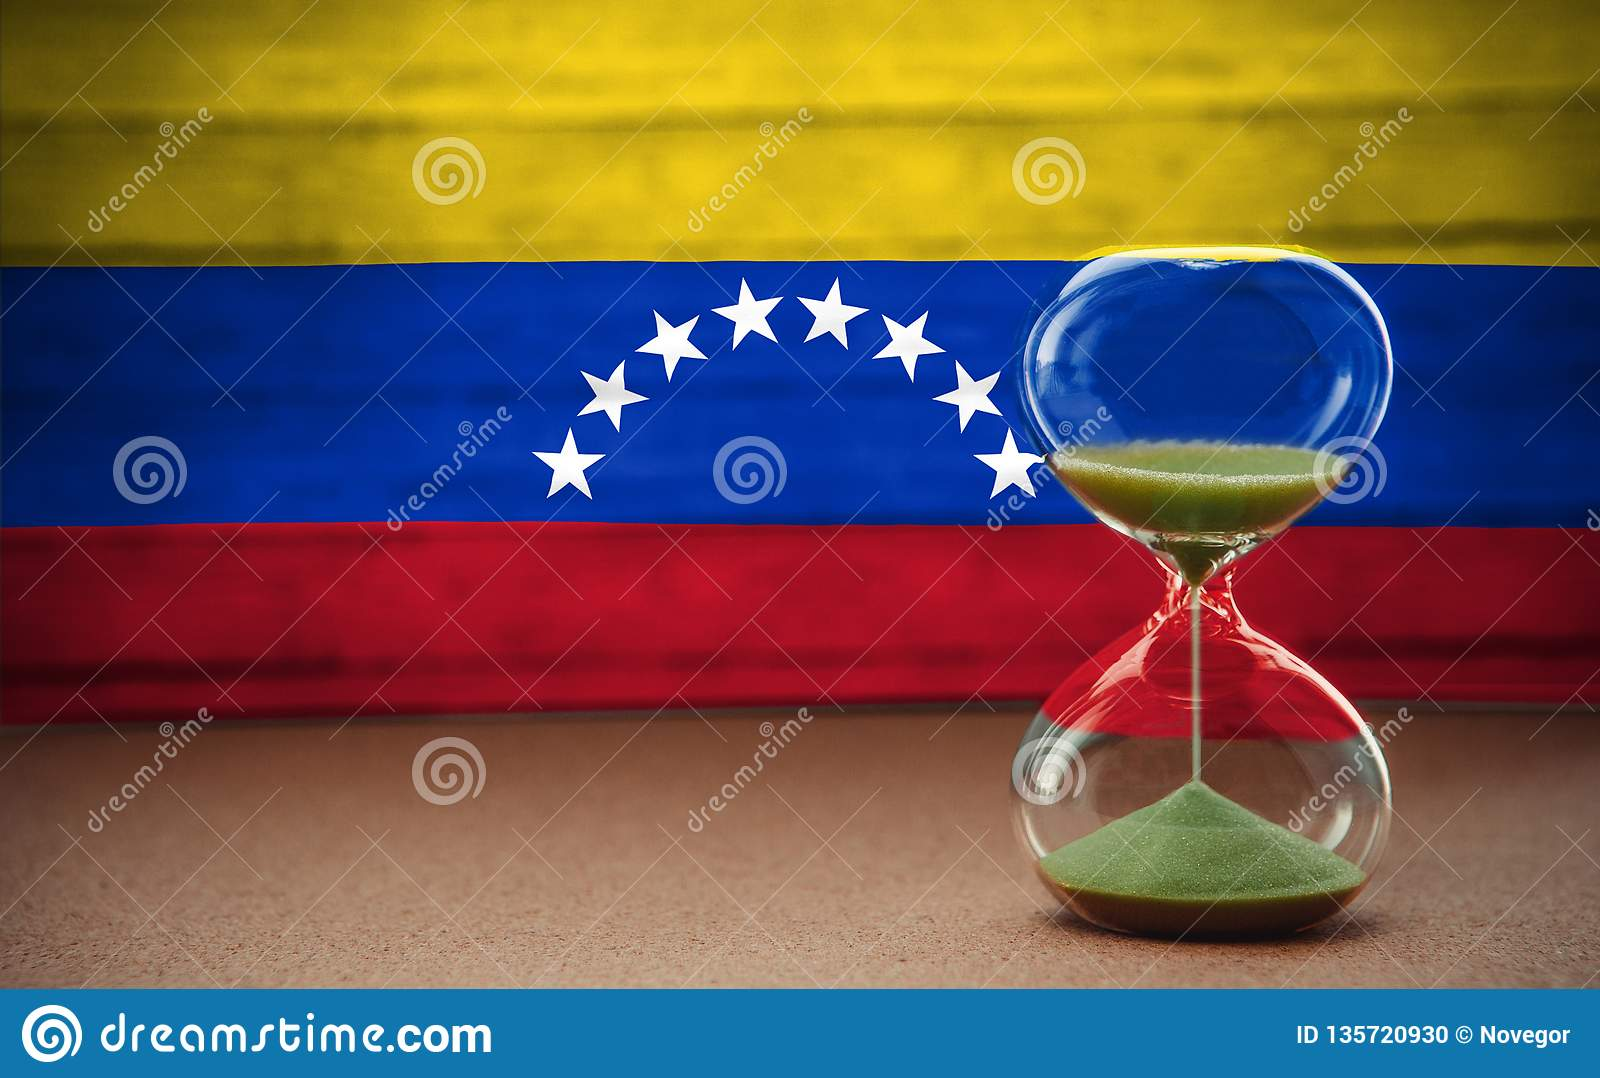 Hourglass on the background of the Venezuela flag, the concept of time and countries, space for text